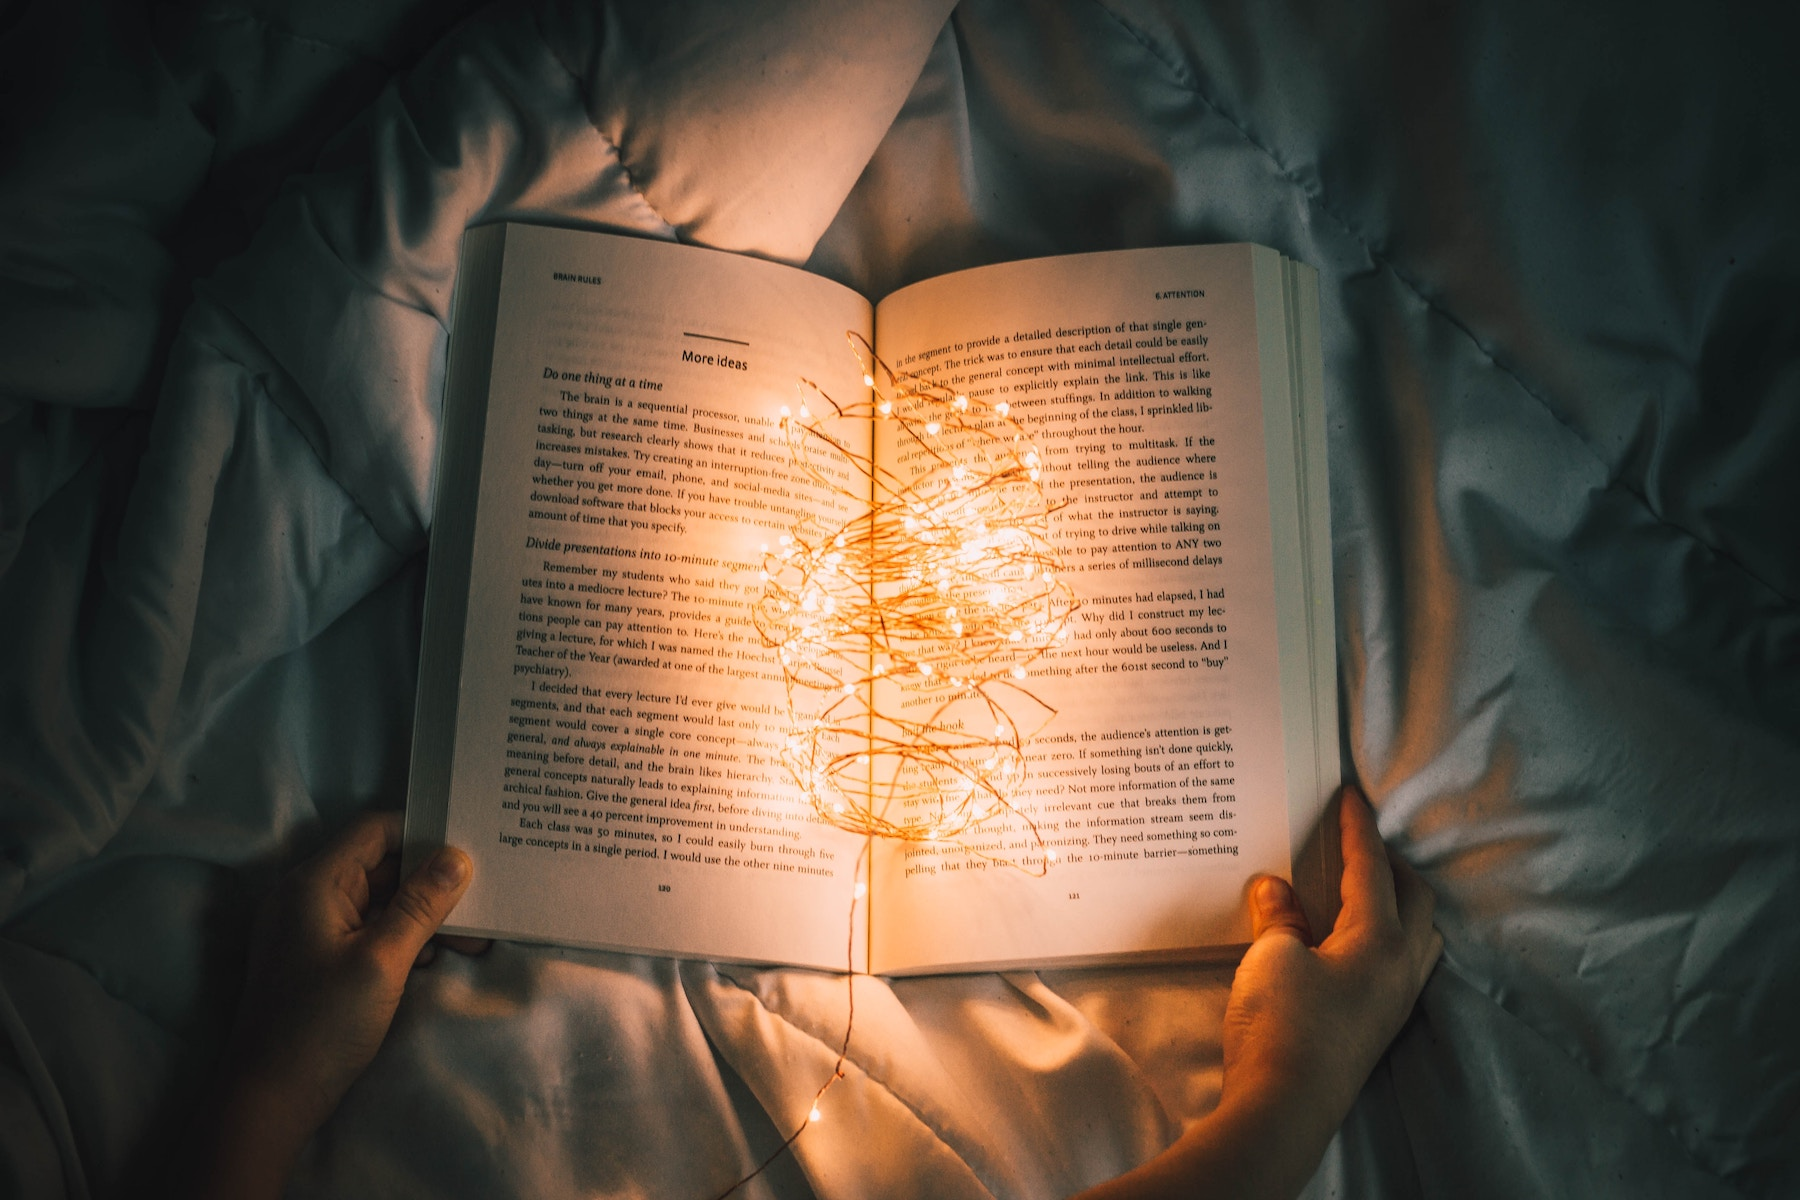 Photo of person reading in the dark by Nong Vang, Unsplash.